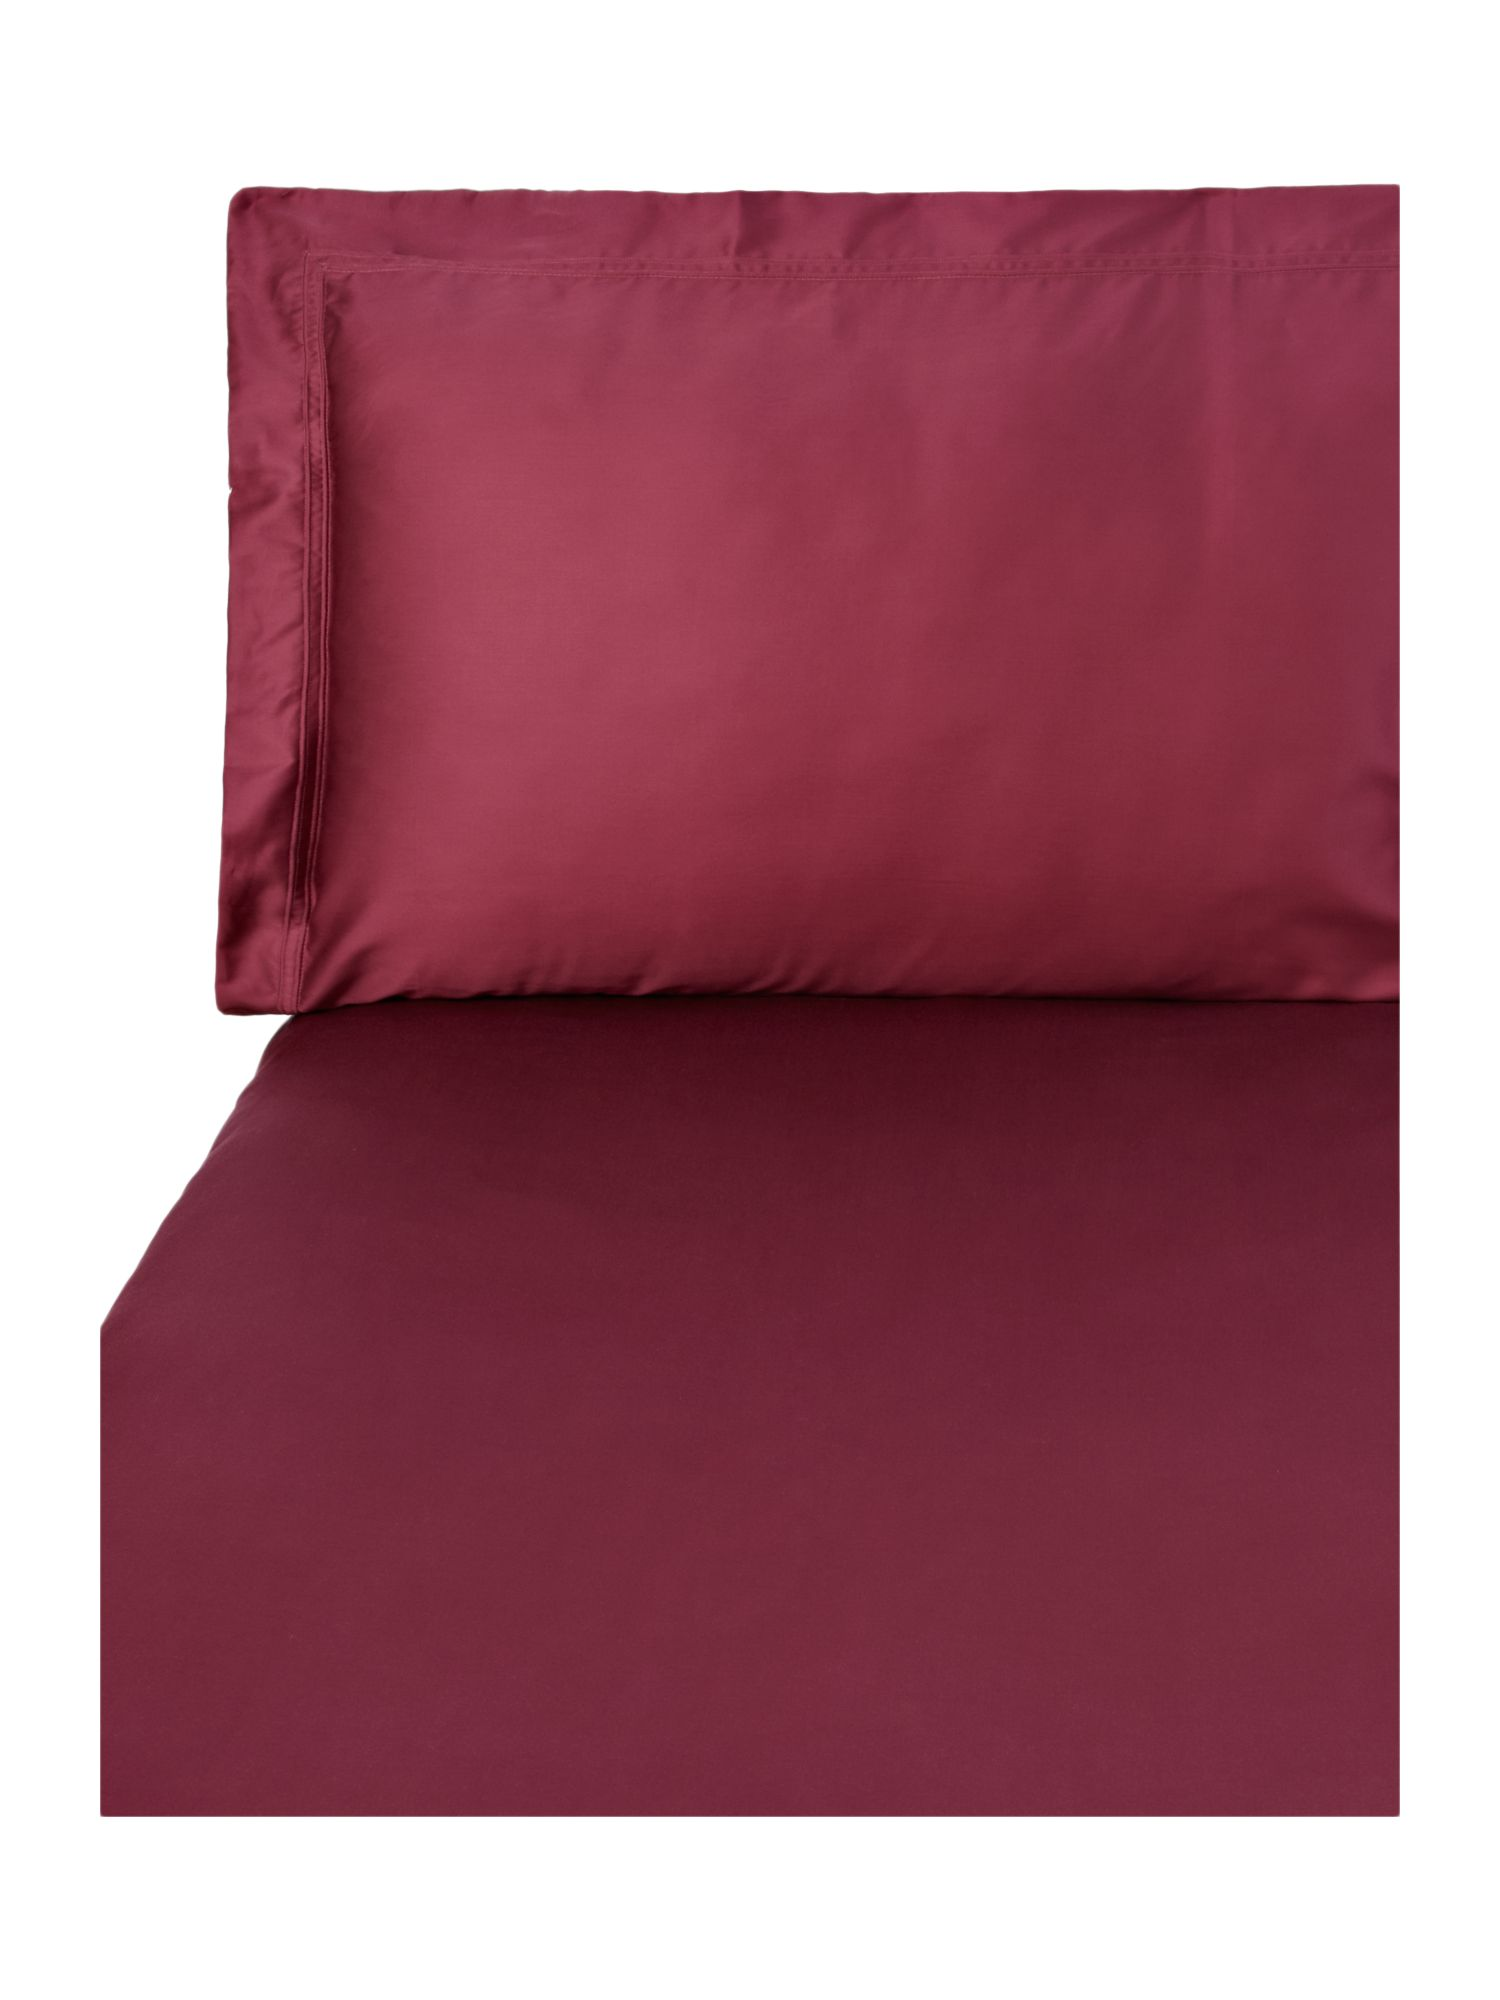 Triomphe rubino king fitted sheet